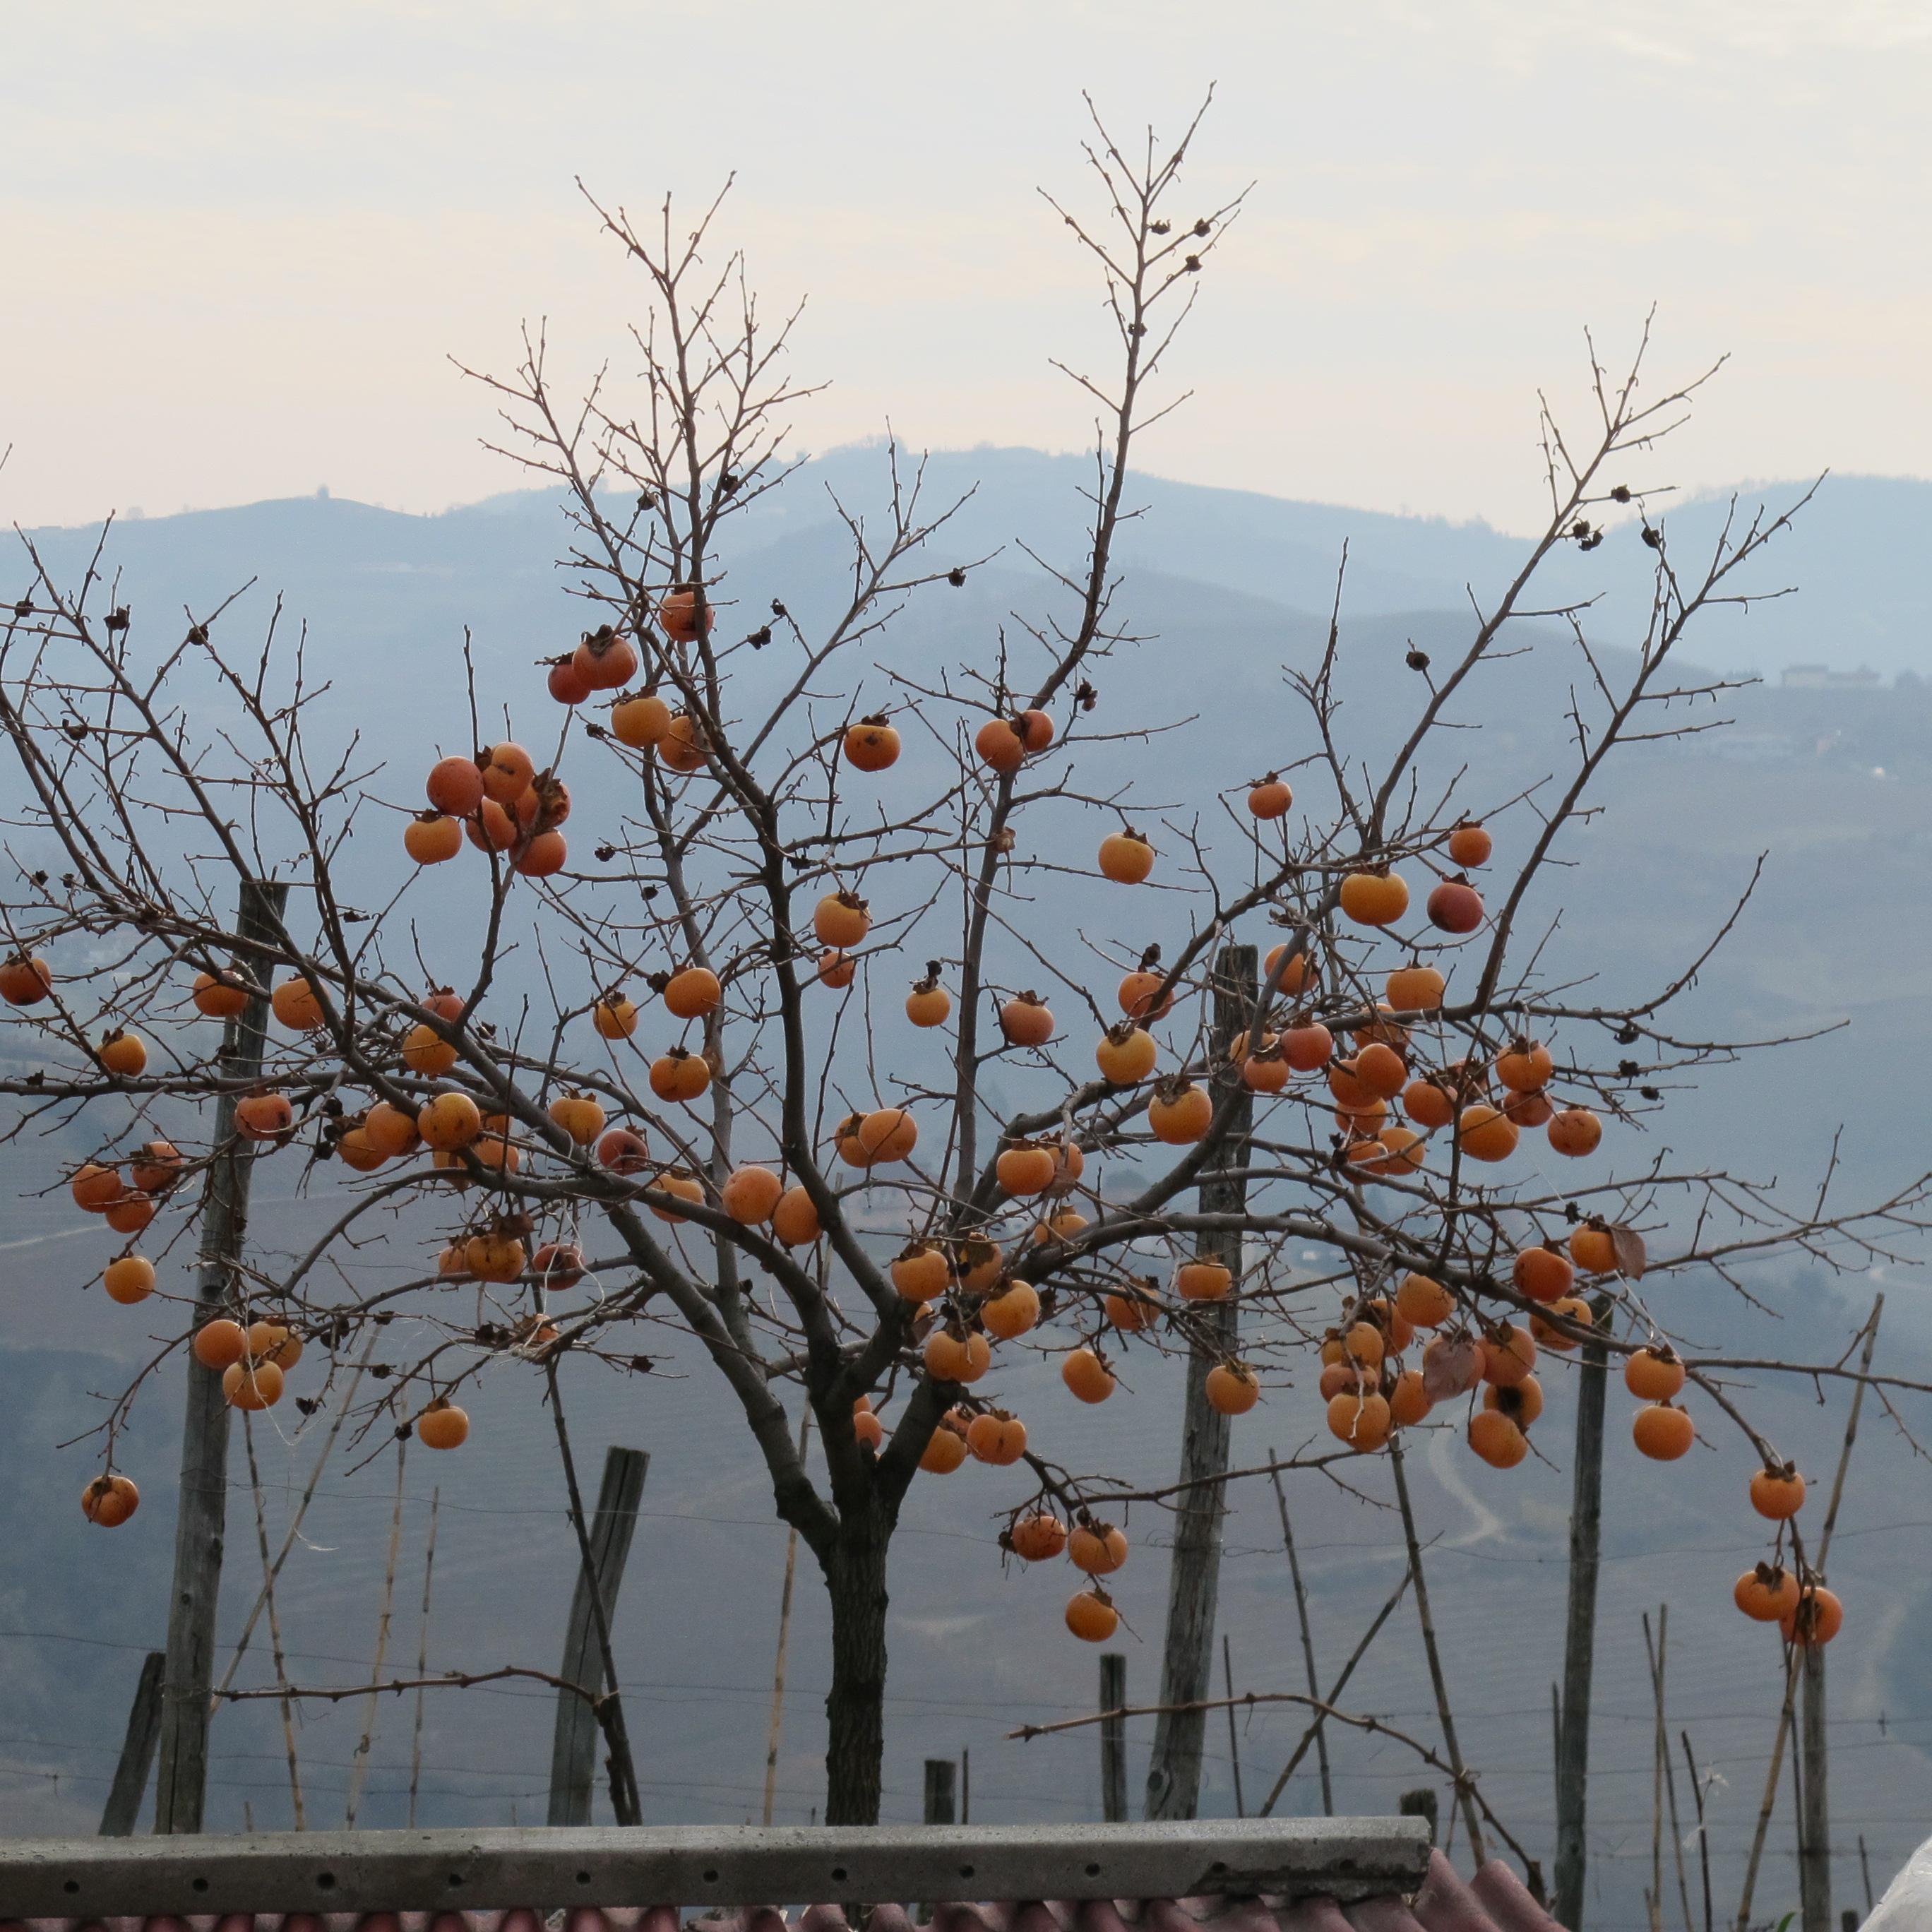 A Persimmon Tree (ripe around november, but I'll count it as winter).